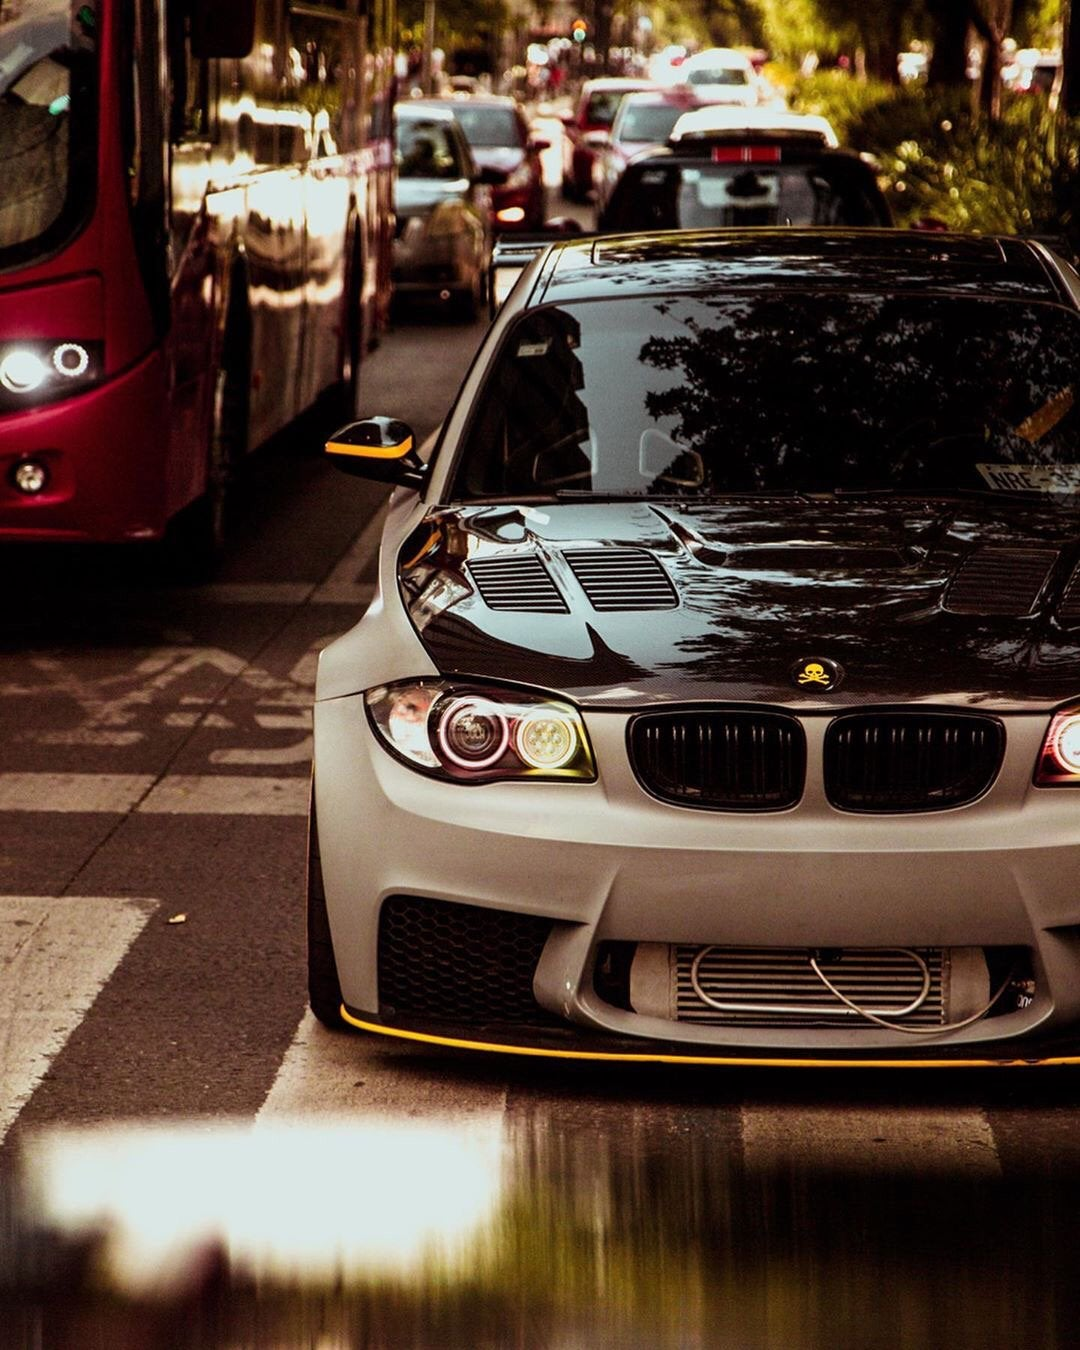 Amazing BMW 135i by Juca